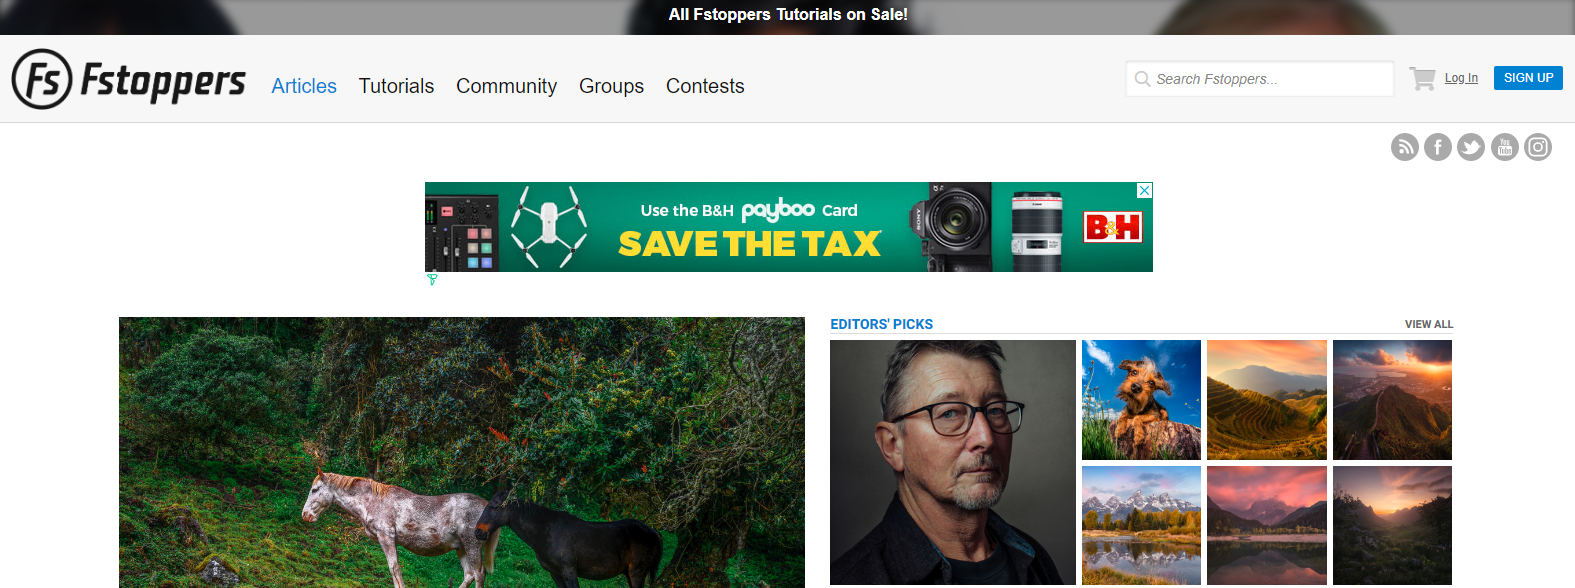 Fstoppers: Photography blog and website